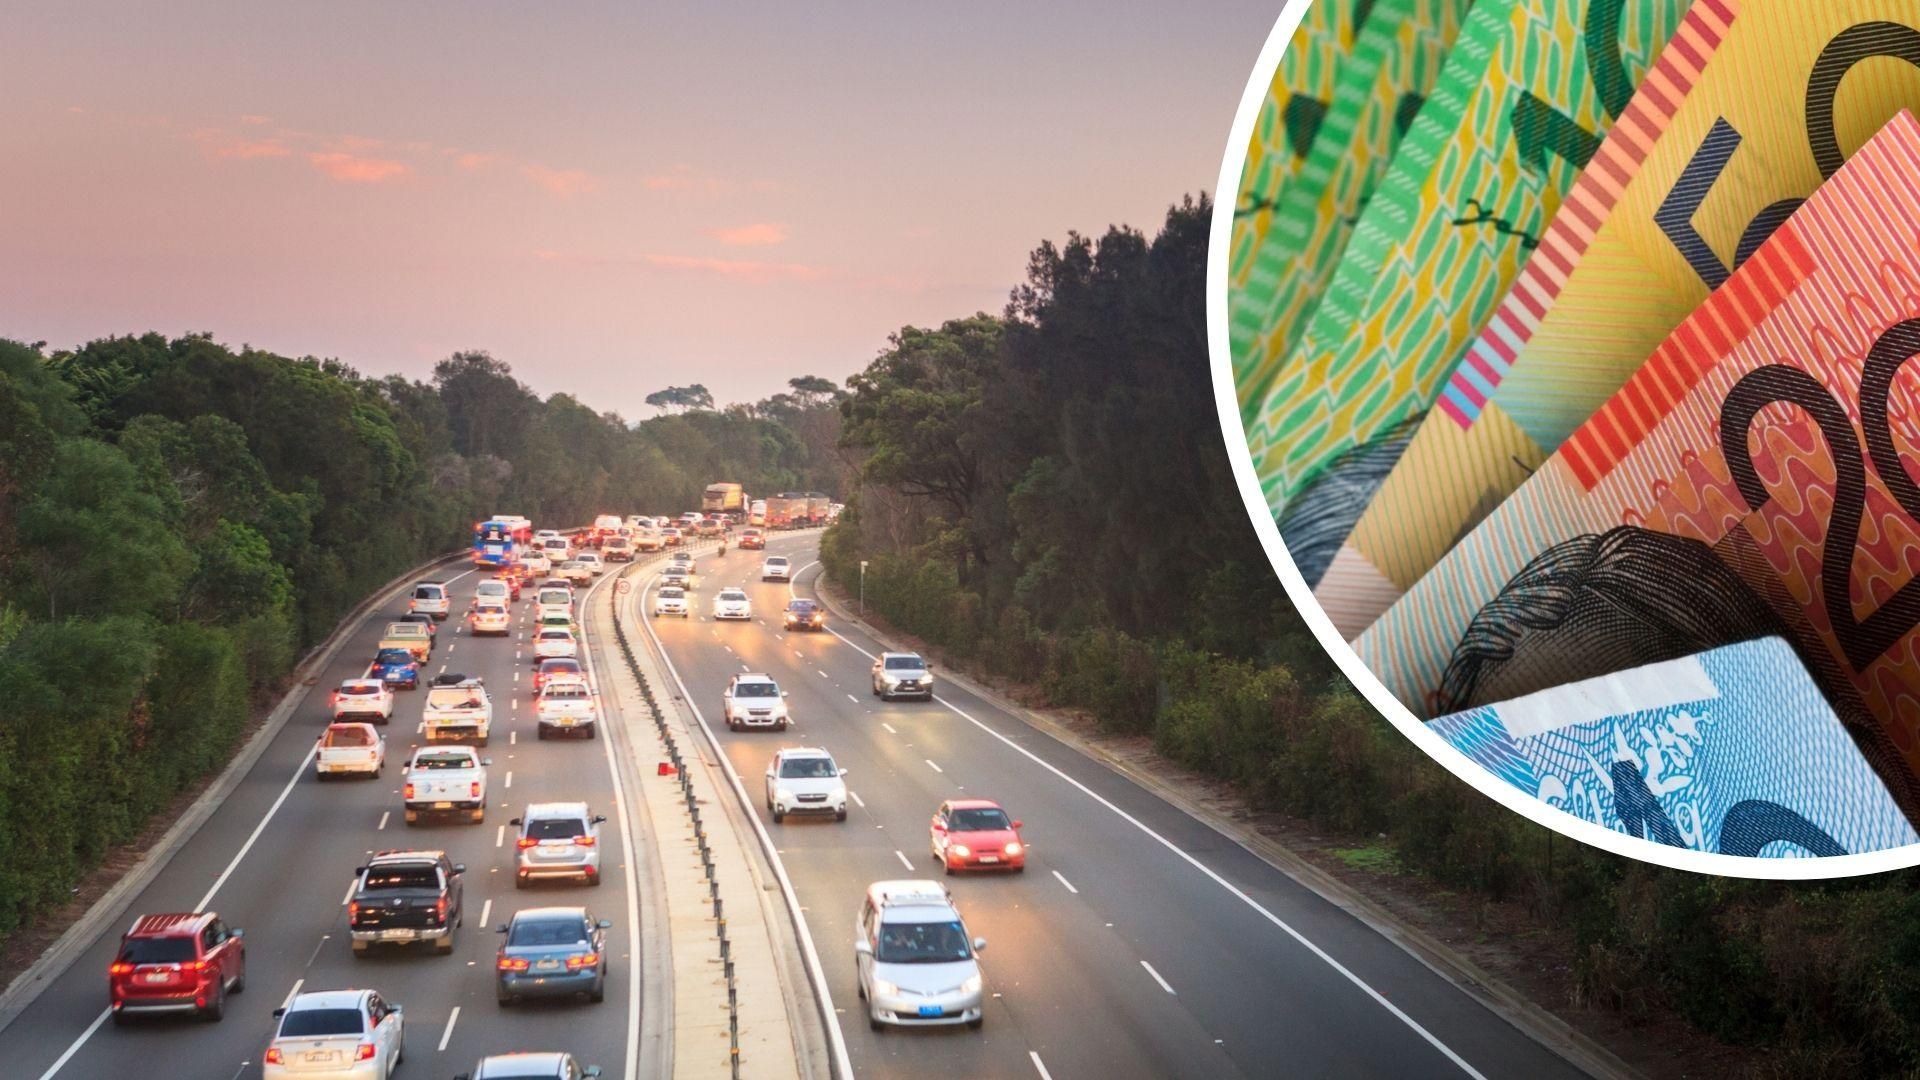 Car colour costing Aussies $178 more on insurance